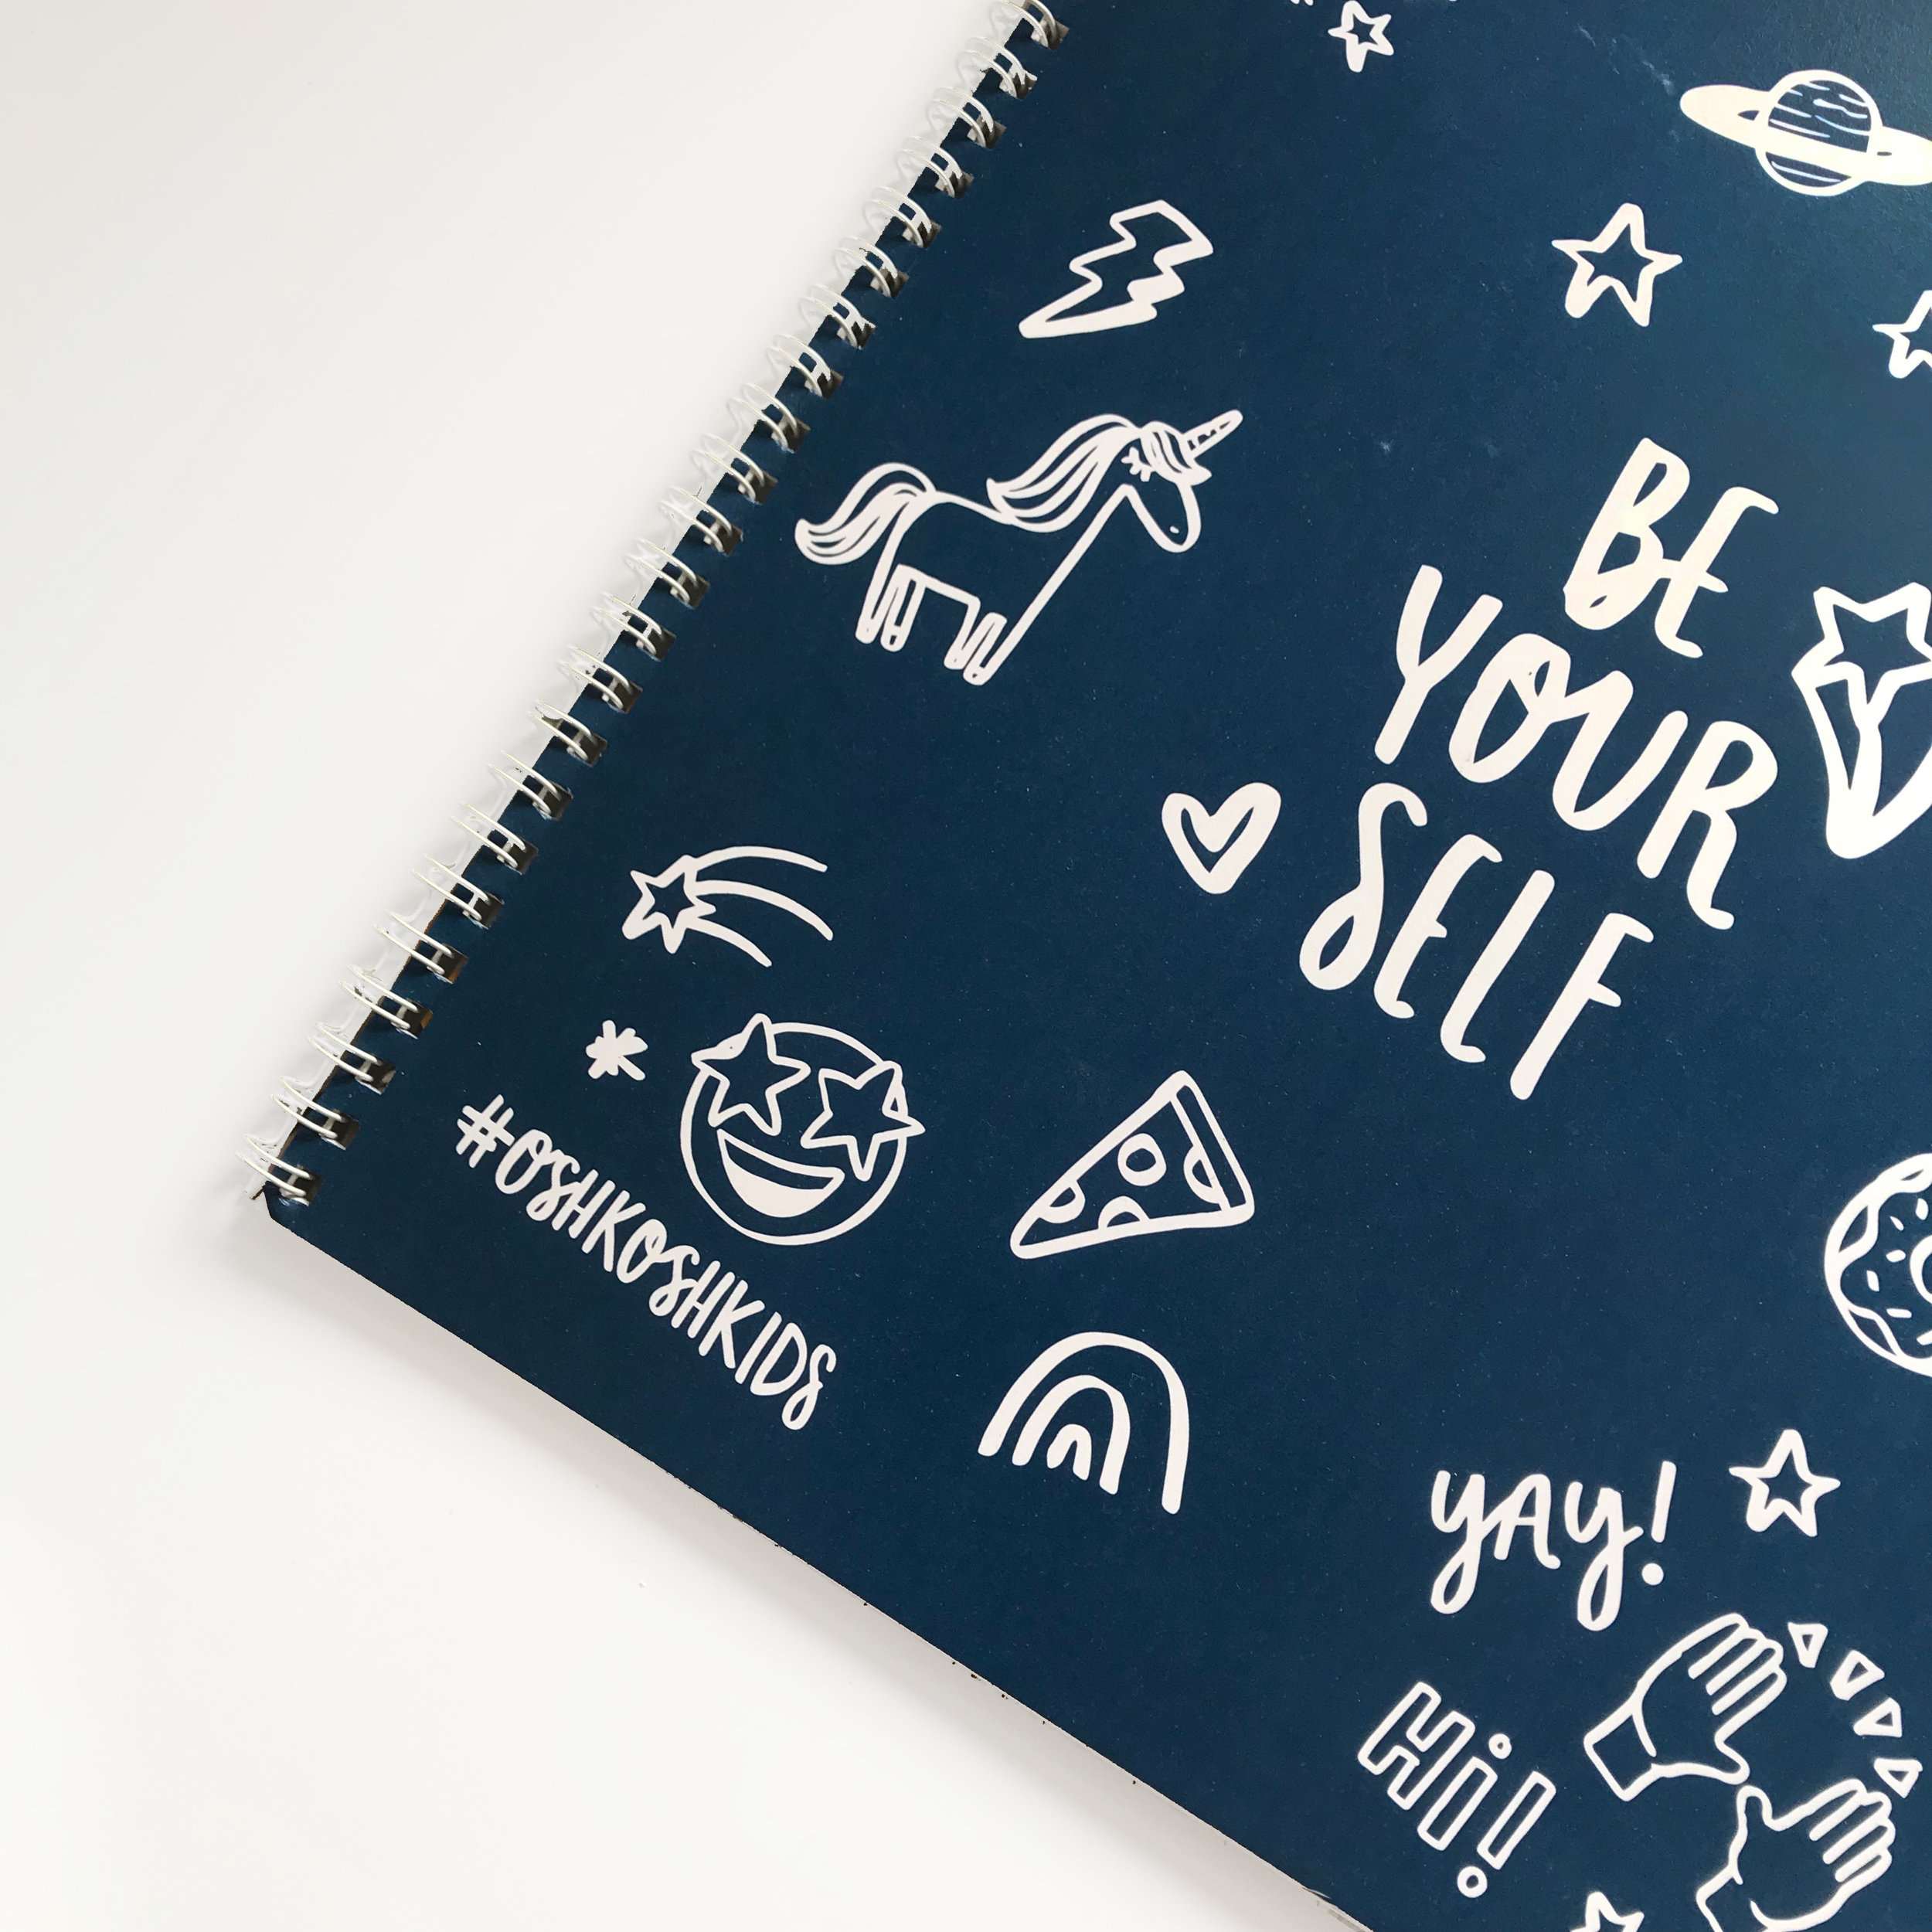 Doodle illustrations on Fall 2019 Brand Book